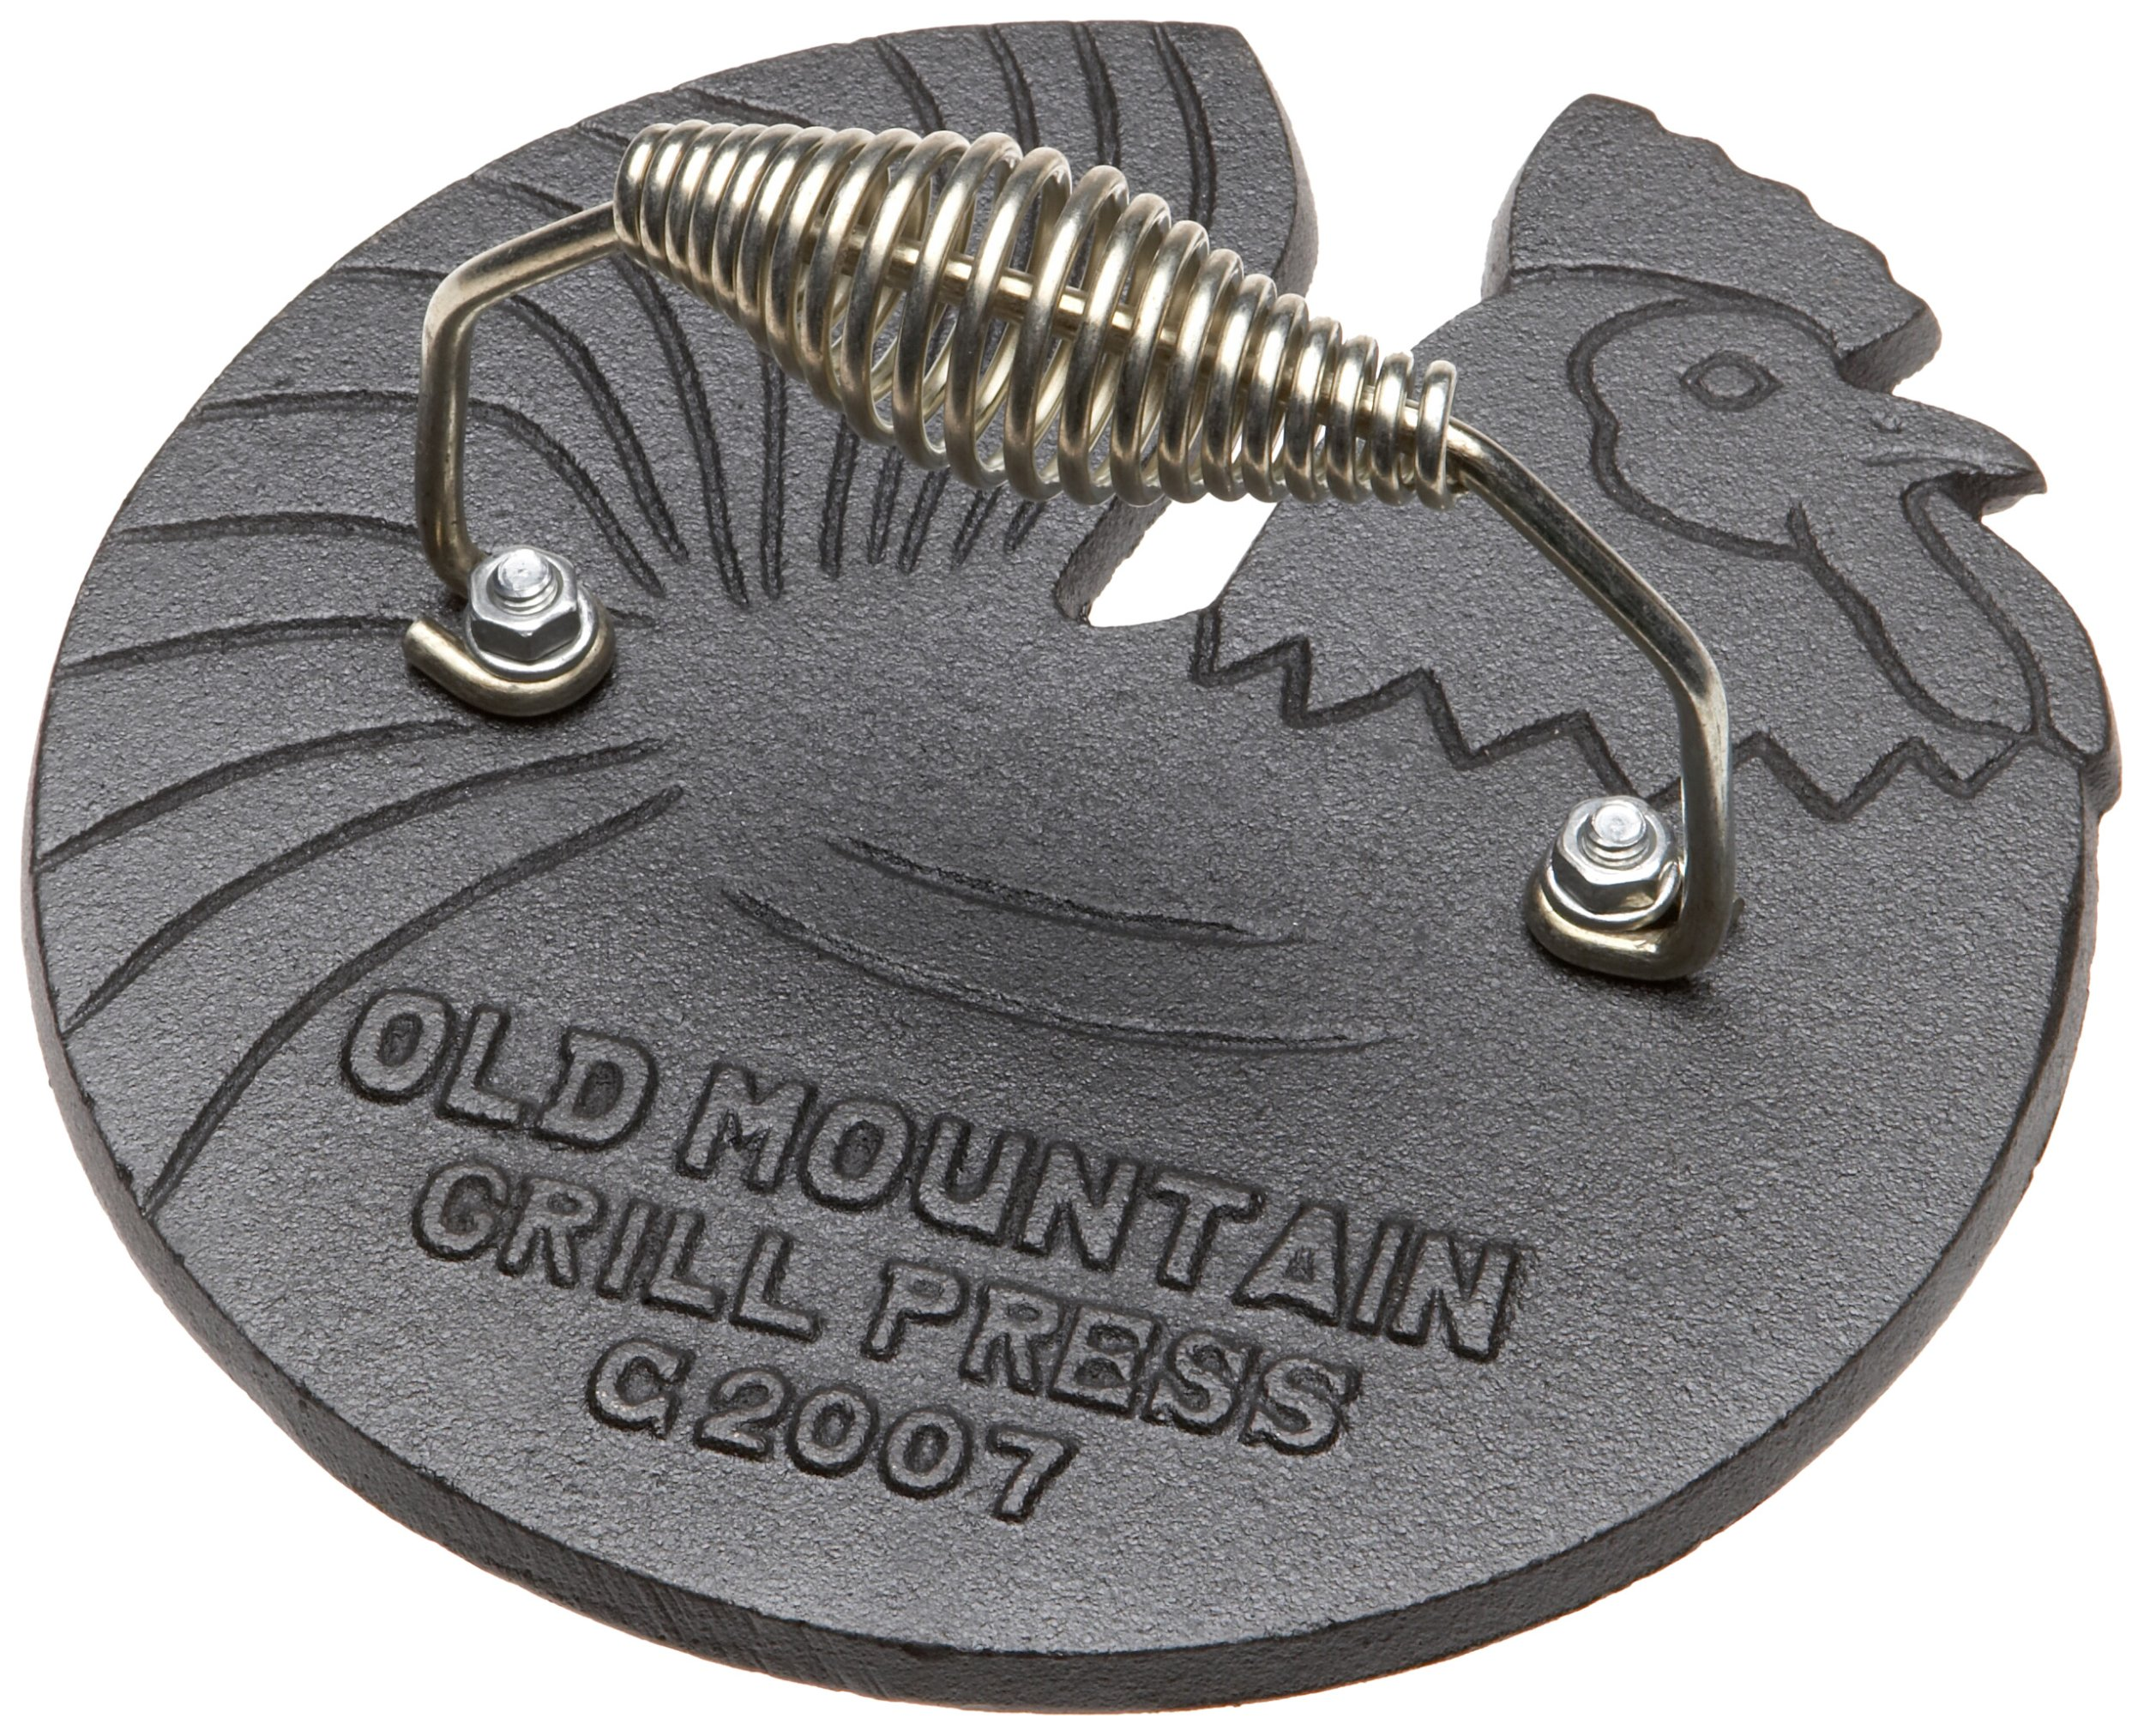 Old Mountain Pre Seasoned 10150 Rooster Shaped Bacon/Grill Press, 7 1/2 Inch Diameter